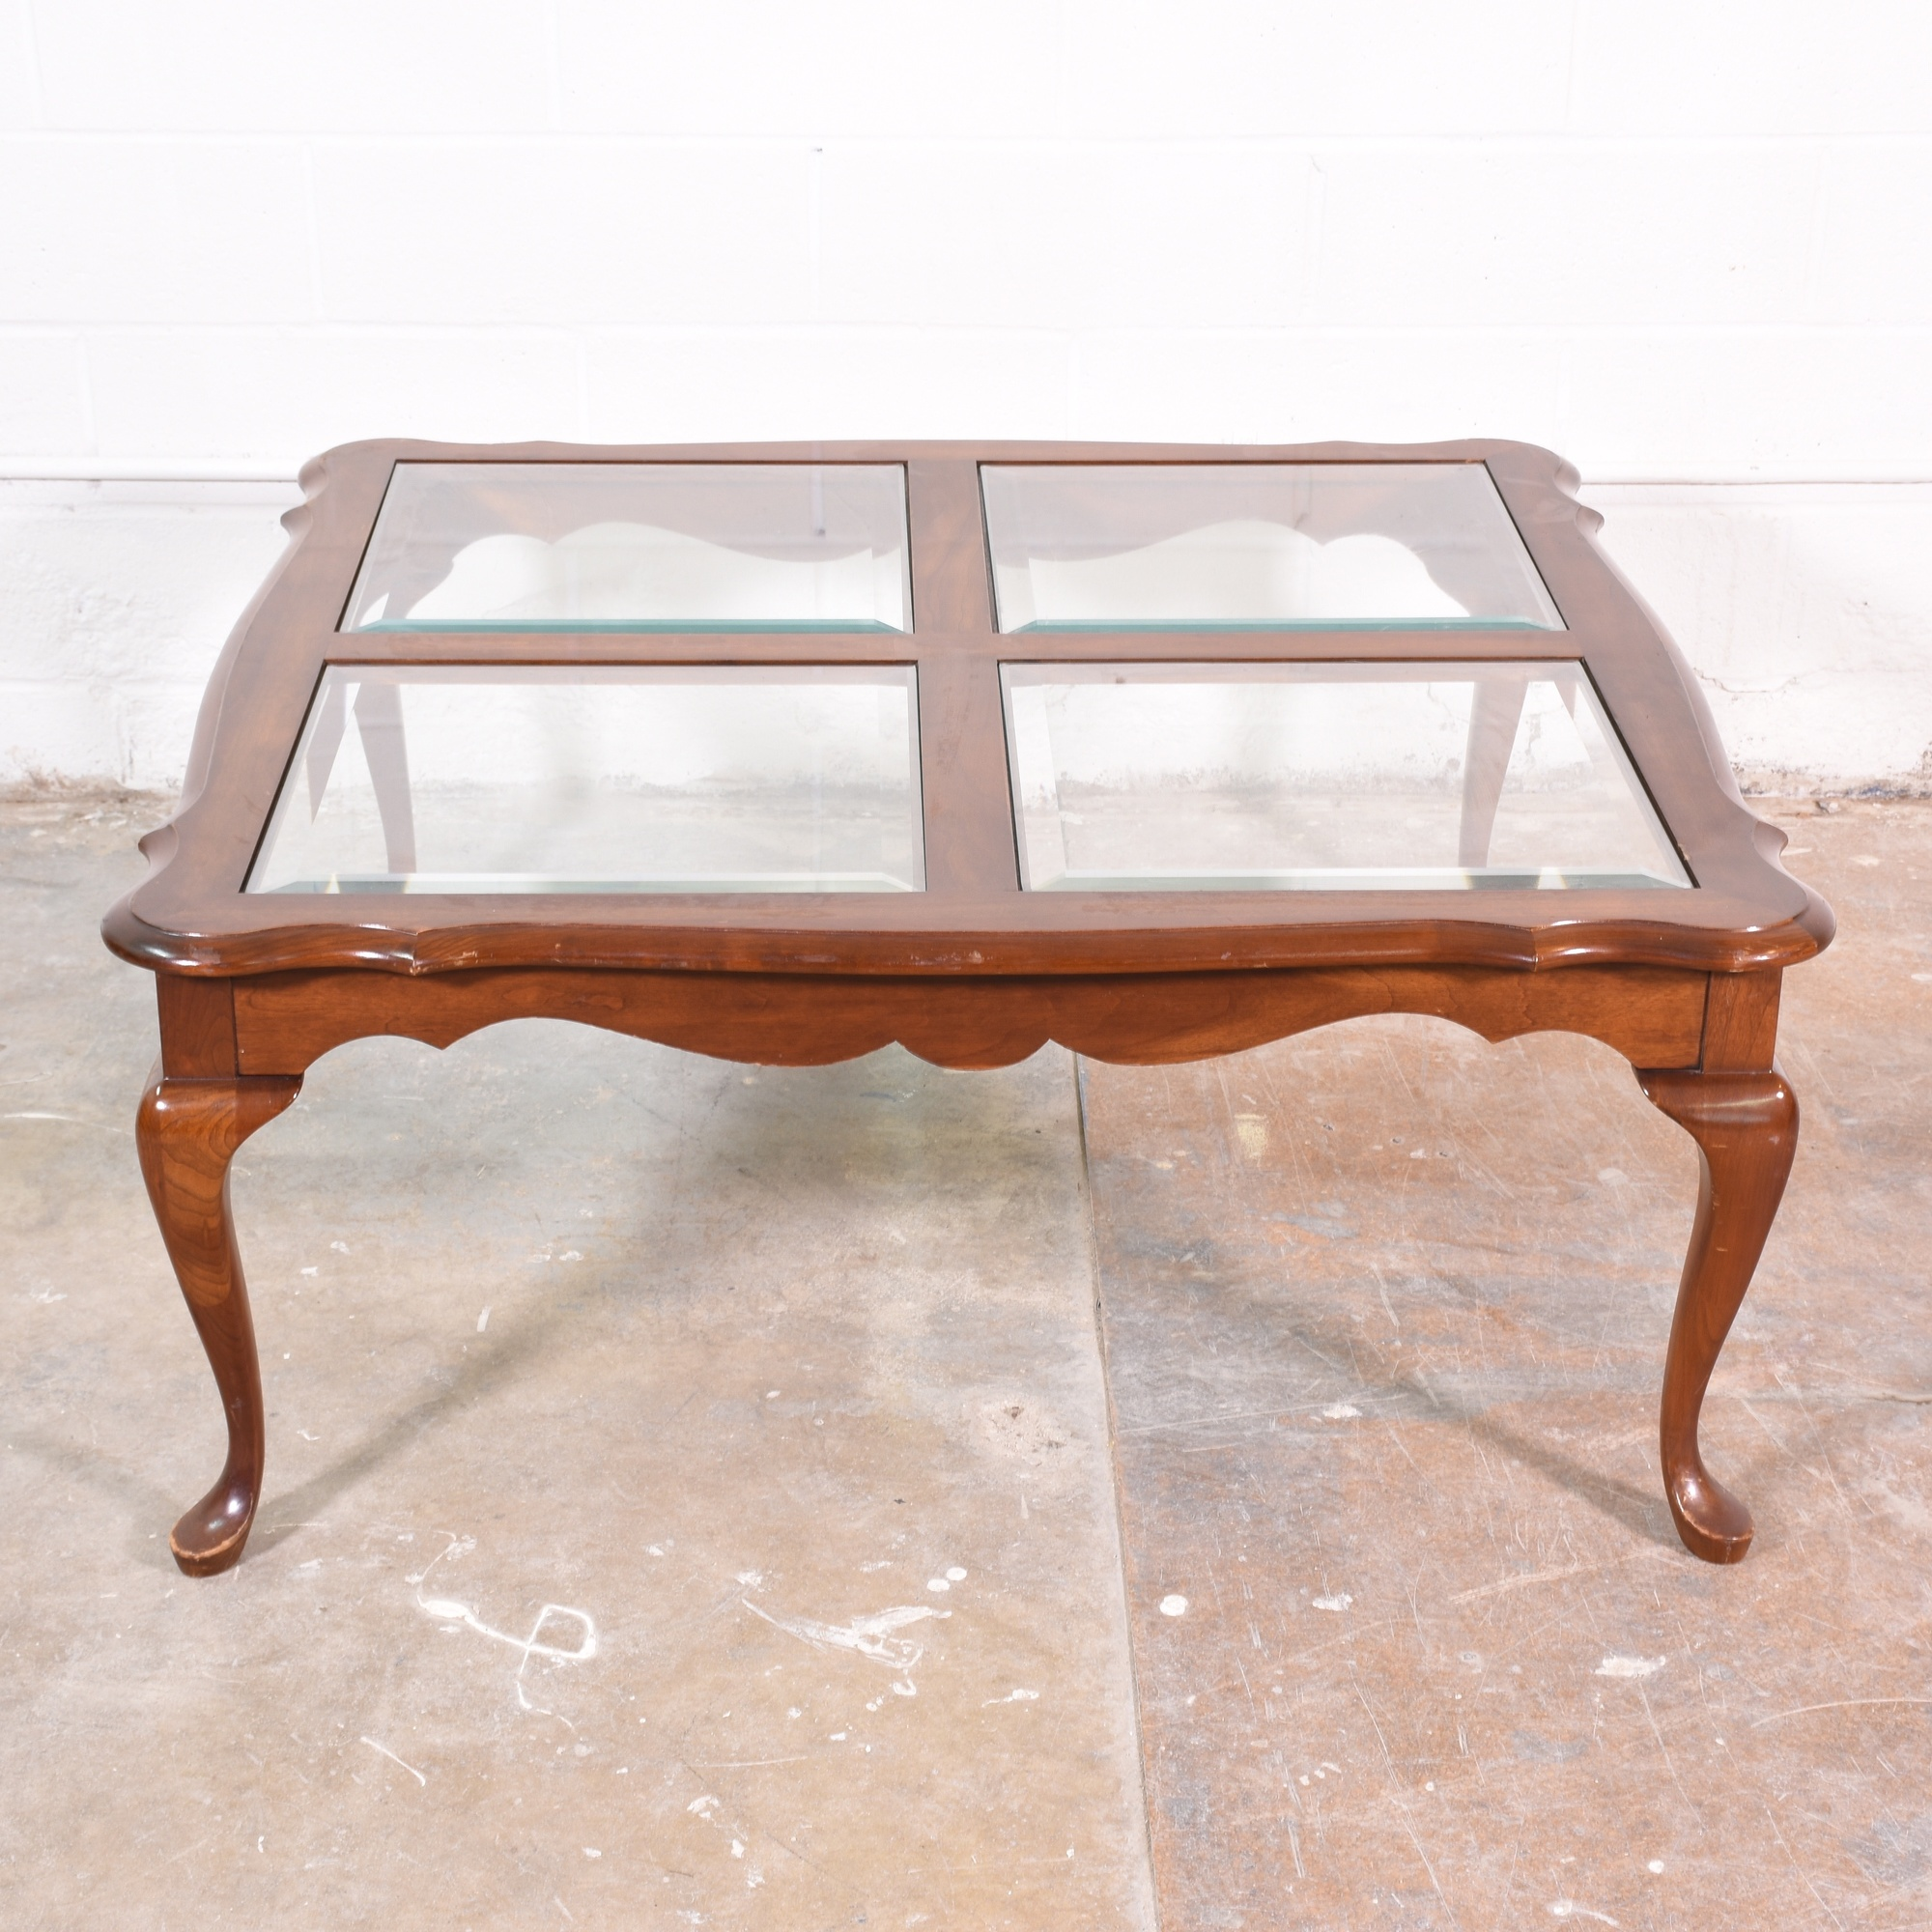 victorian style coffee table w glass